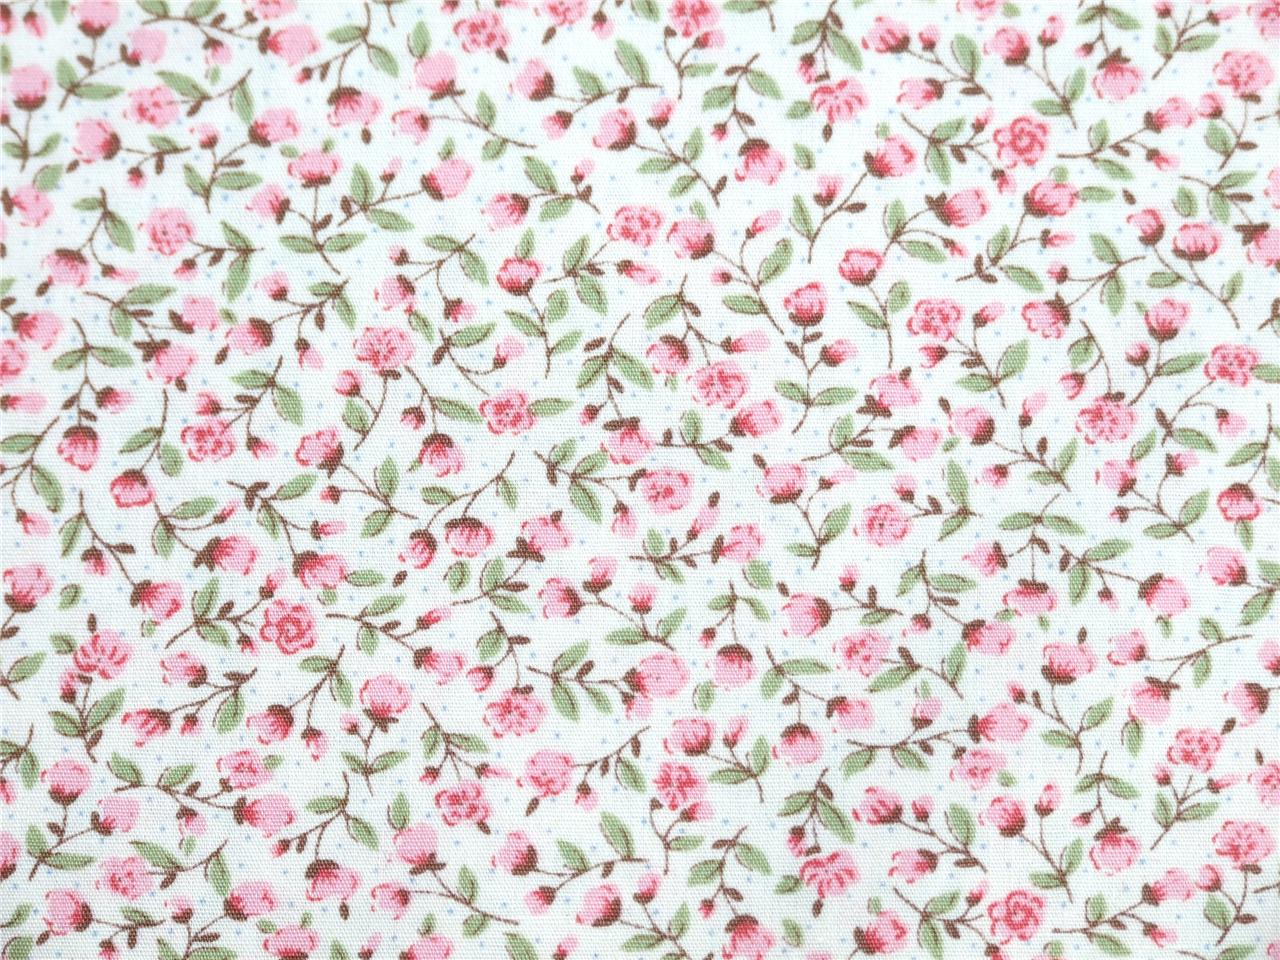 Pure cotton fabric PINK FLOWER FLORAL SPOT shabby chic patchwork dress buntin